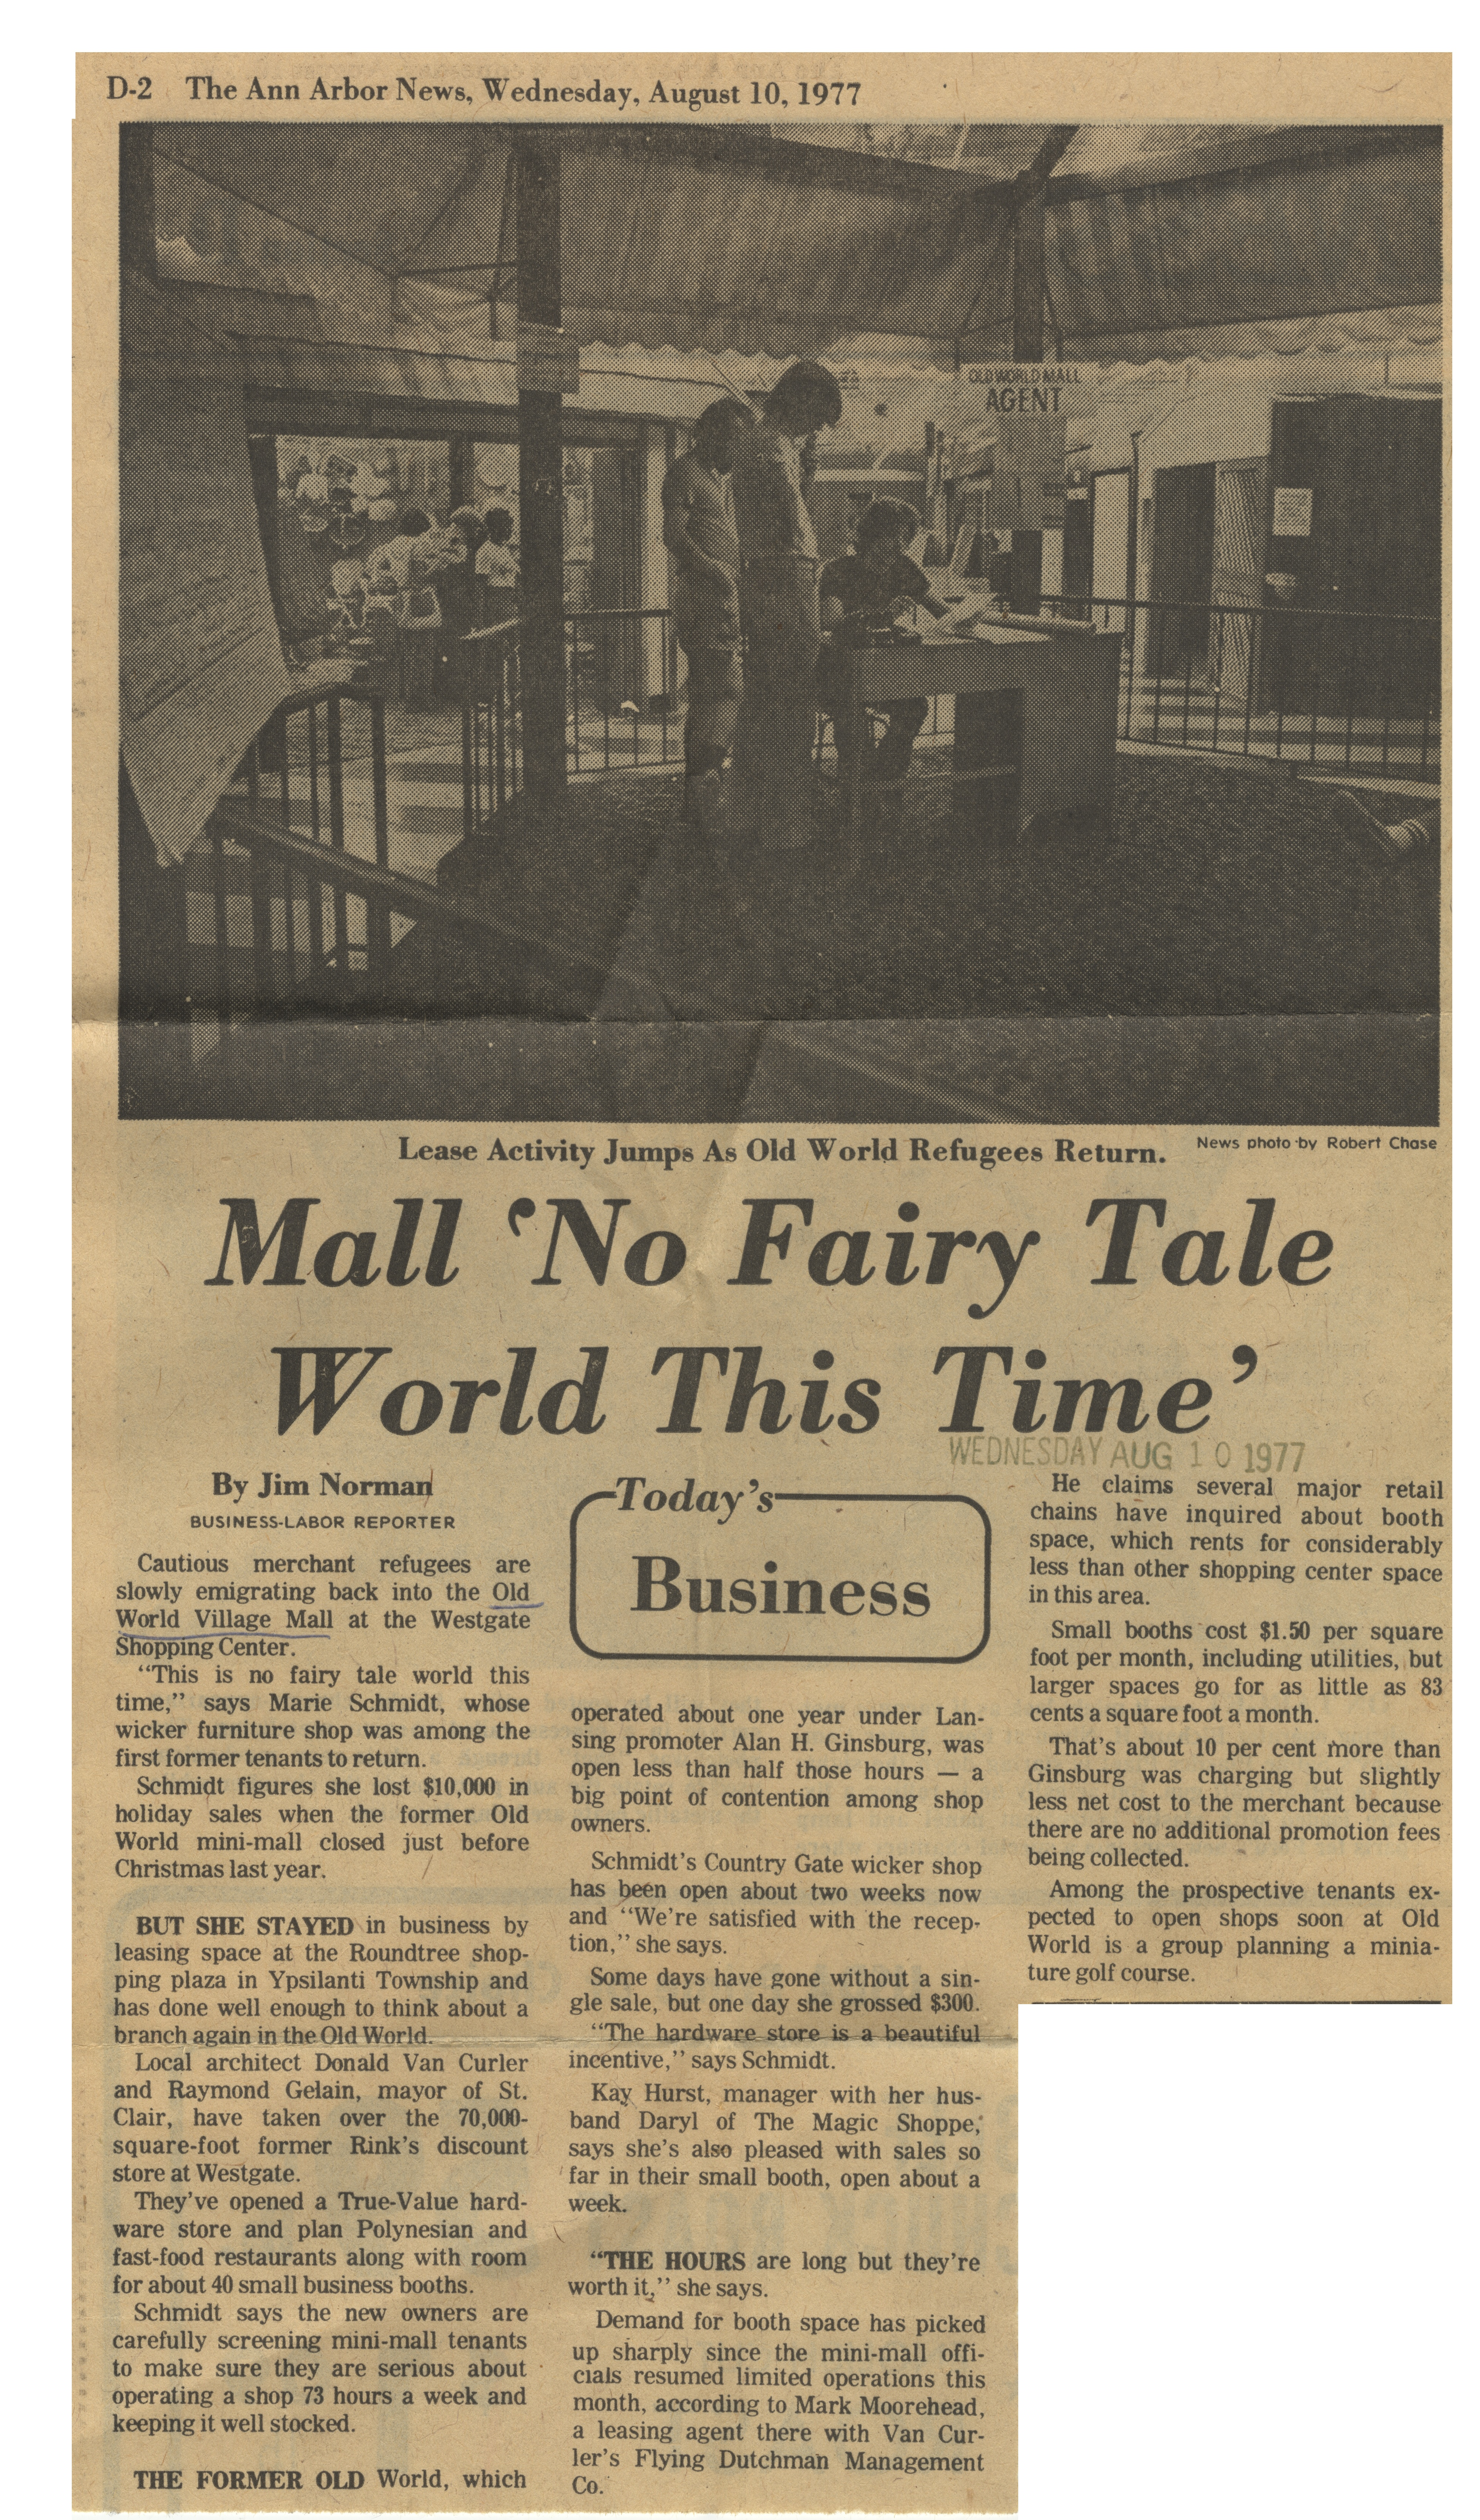 Mall 'No Fairy Tale World This Time' image